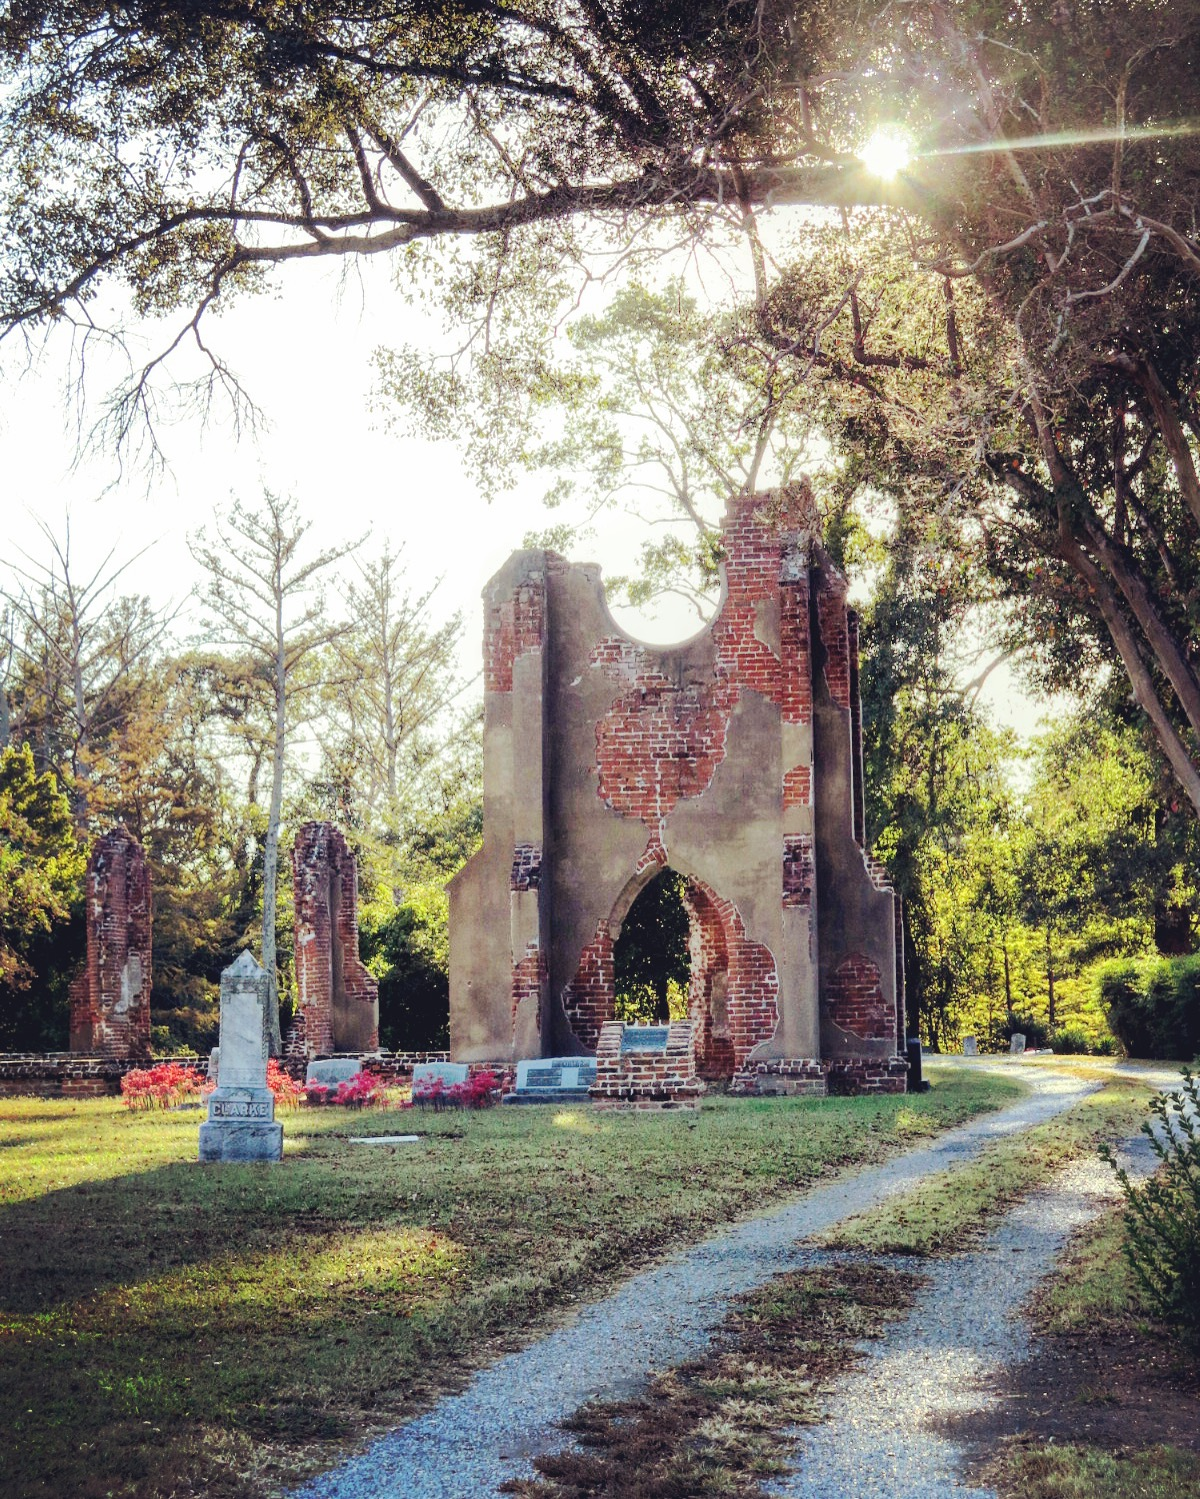 Evergreen Cemetery and the Ruins of St. John's Church